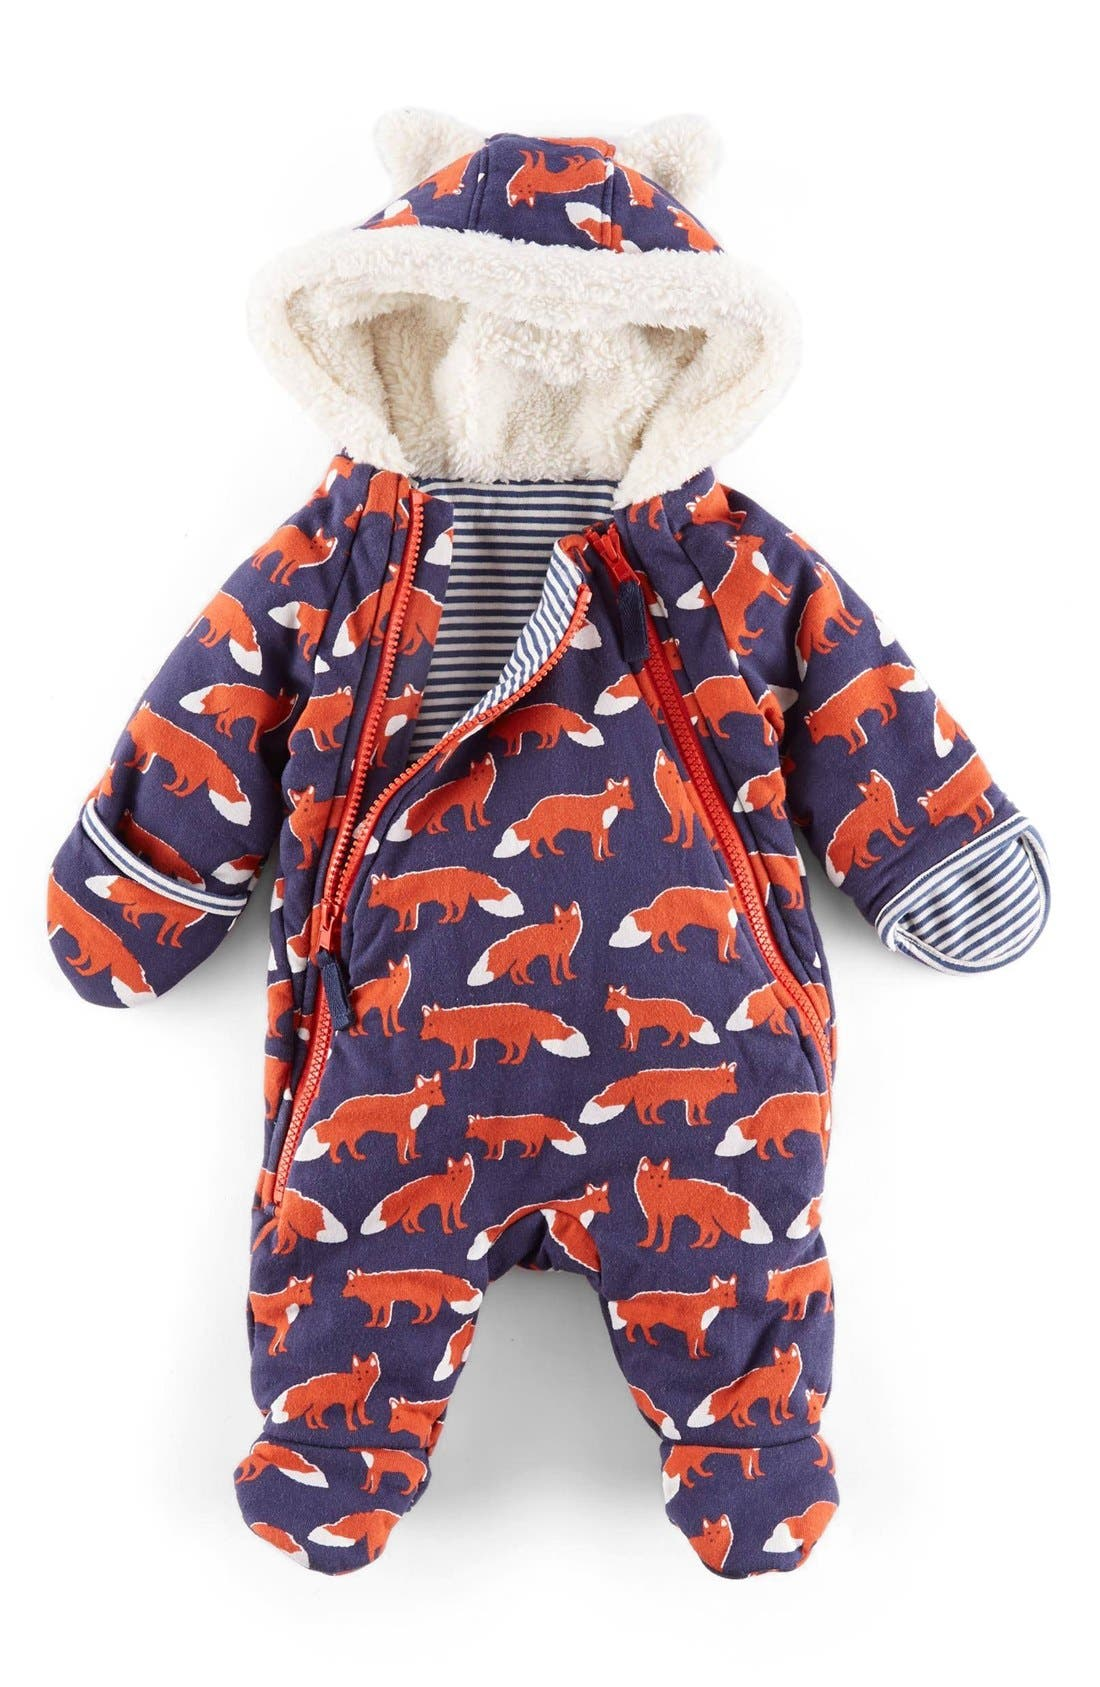 Find baby snowsuit at Macy's Macy's Presents: The Edit - A curated mix of fashion and inspiration Check It Out Free Shipping with $75 purchase + Free Store Pickup.